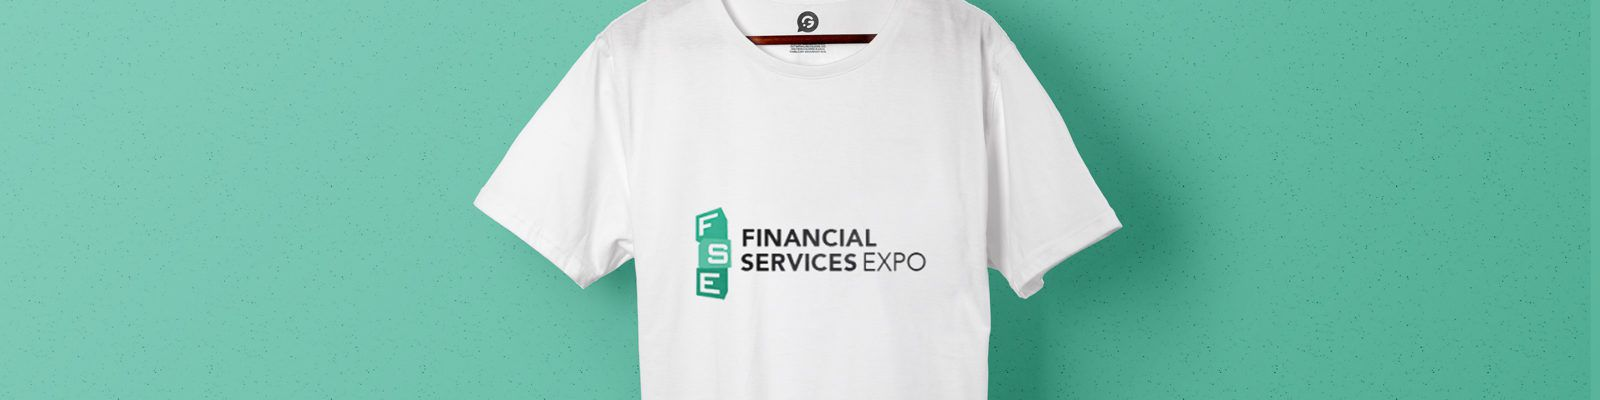 Embroidered Branded Workwear For Financial Services Expo - Header Image